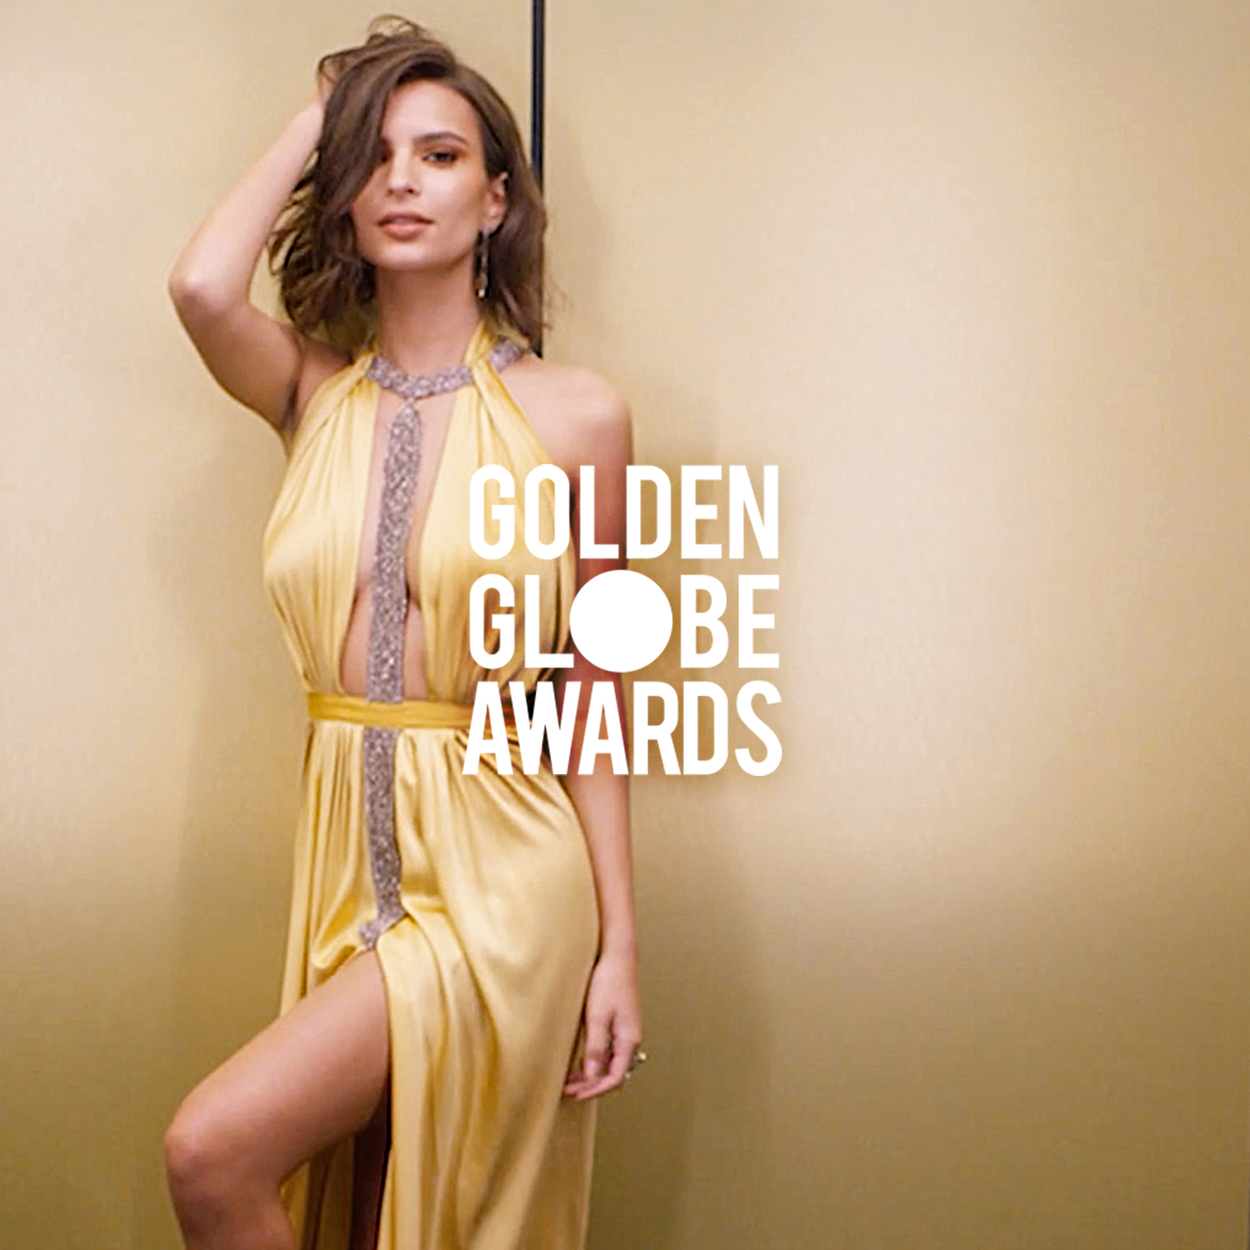 golden globes_need retouched_home2.jpg